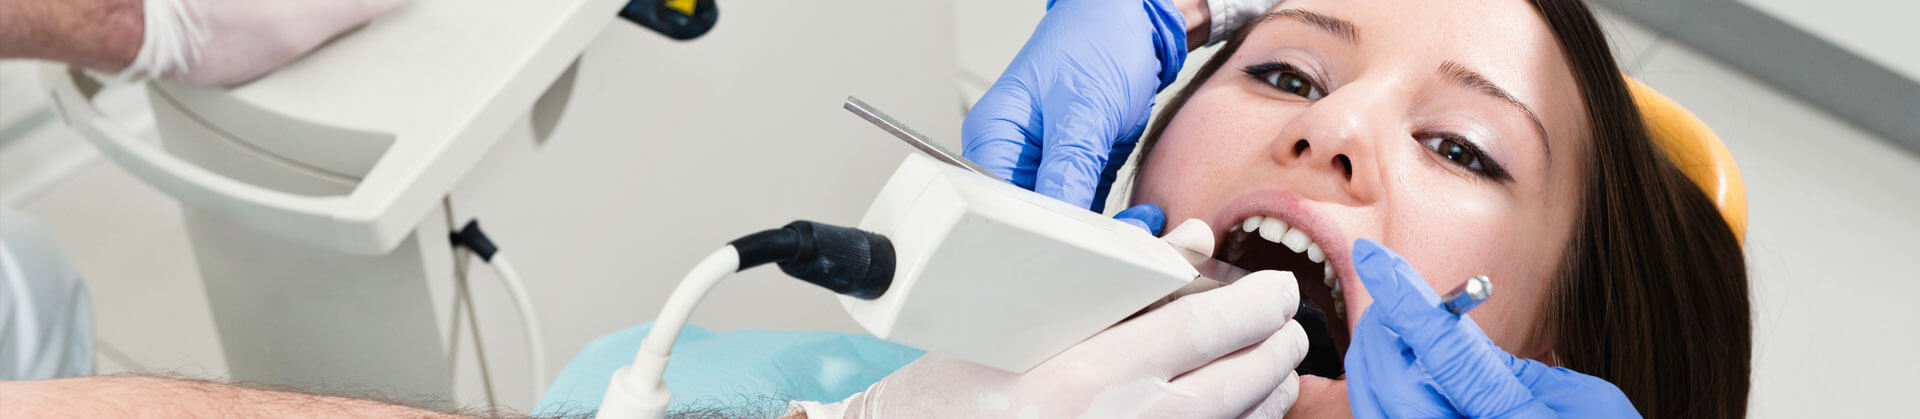 Patient being treated at Dental clinic